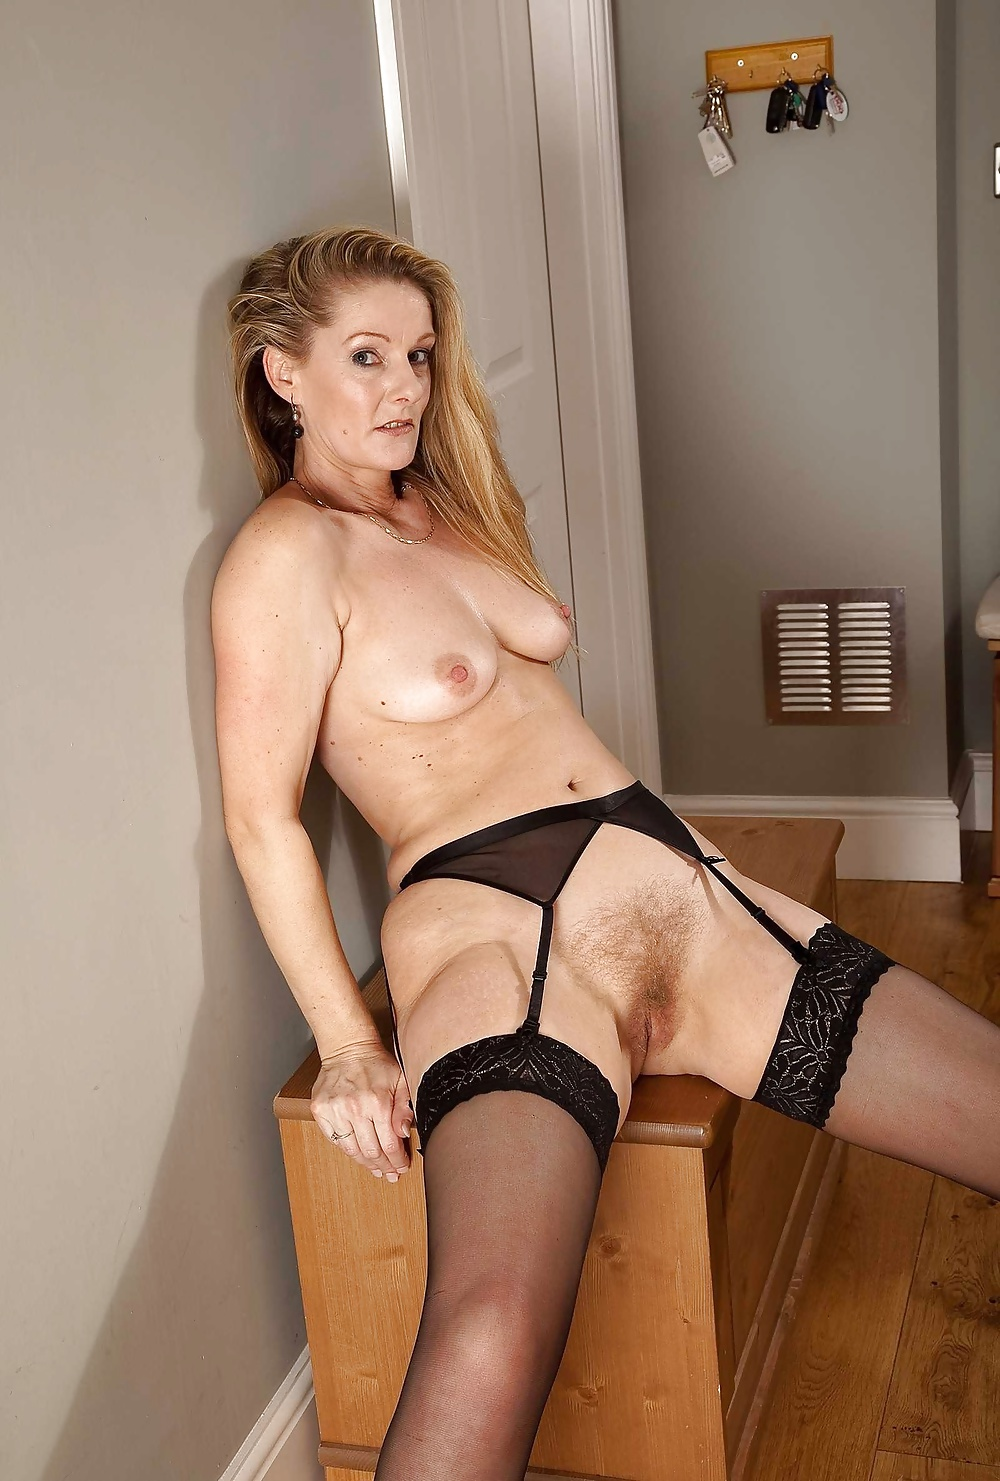 Hot moms in stocking